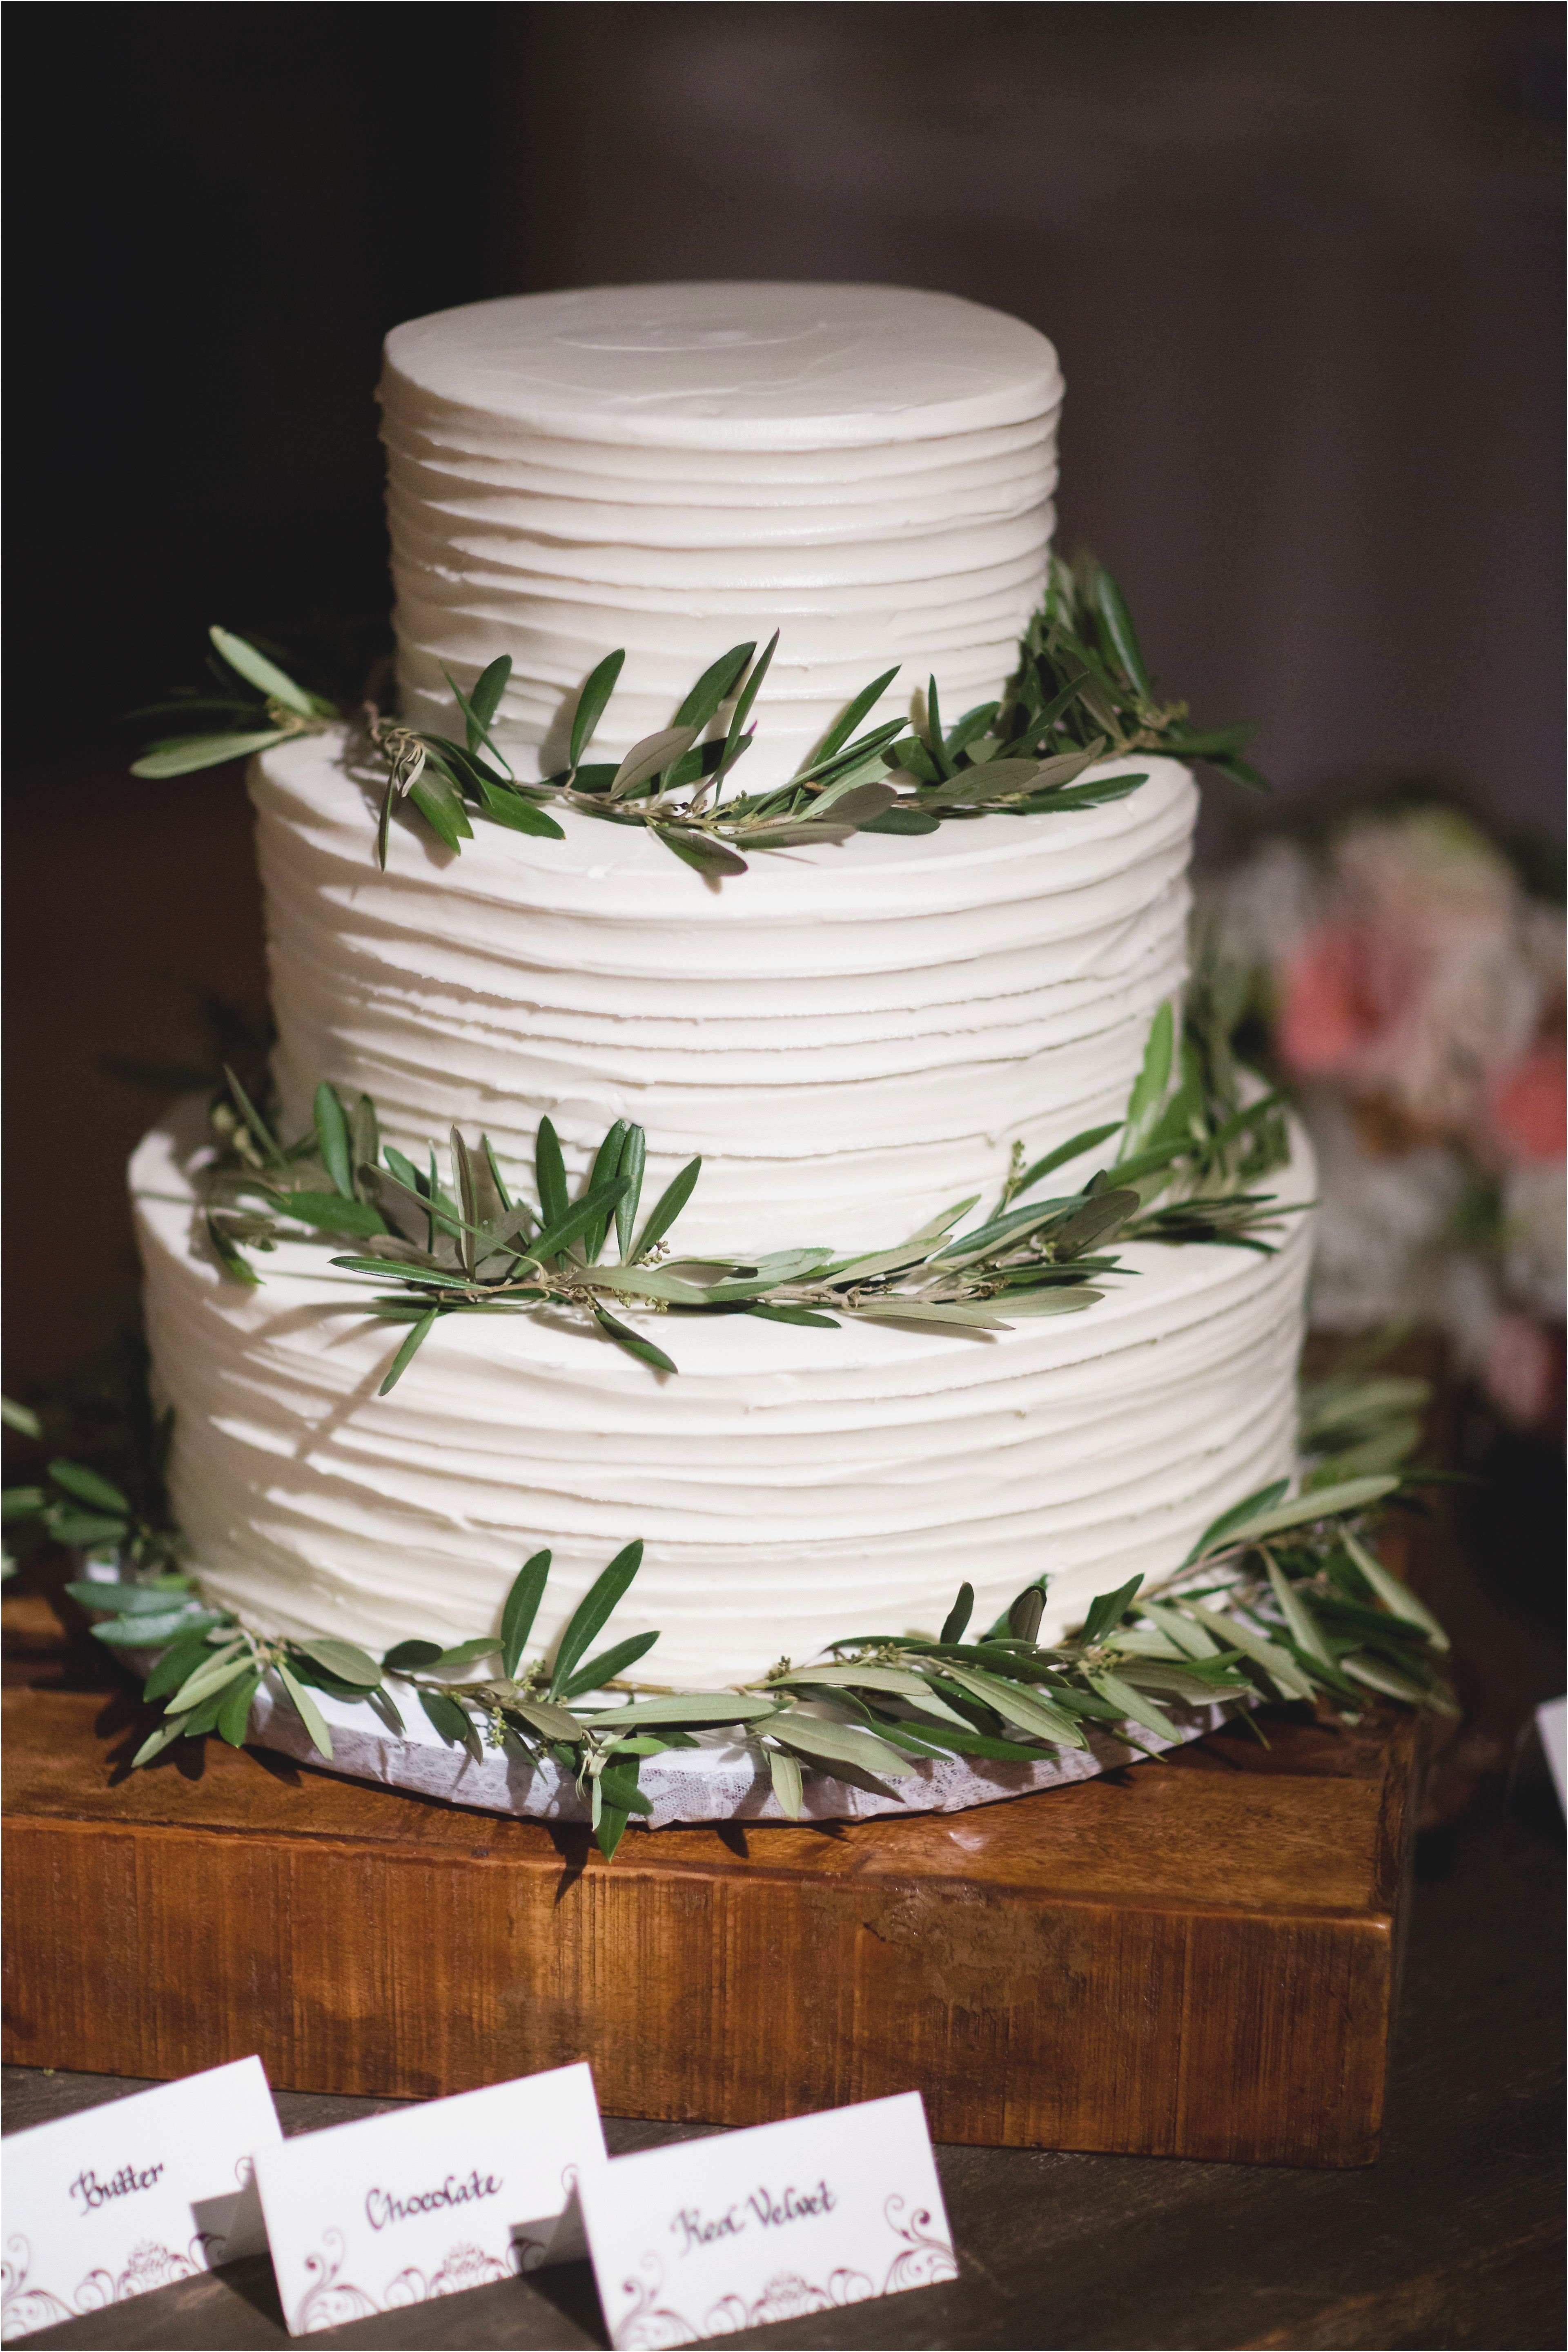 square vase stand of wedding cake table decorations pictures luxury decorating ideas for in wedding cake table decorations pictures luxury decorating ideas for wedding a bud new dsc h vases